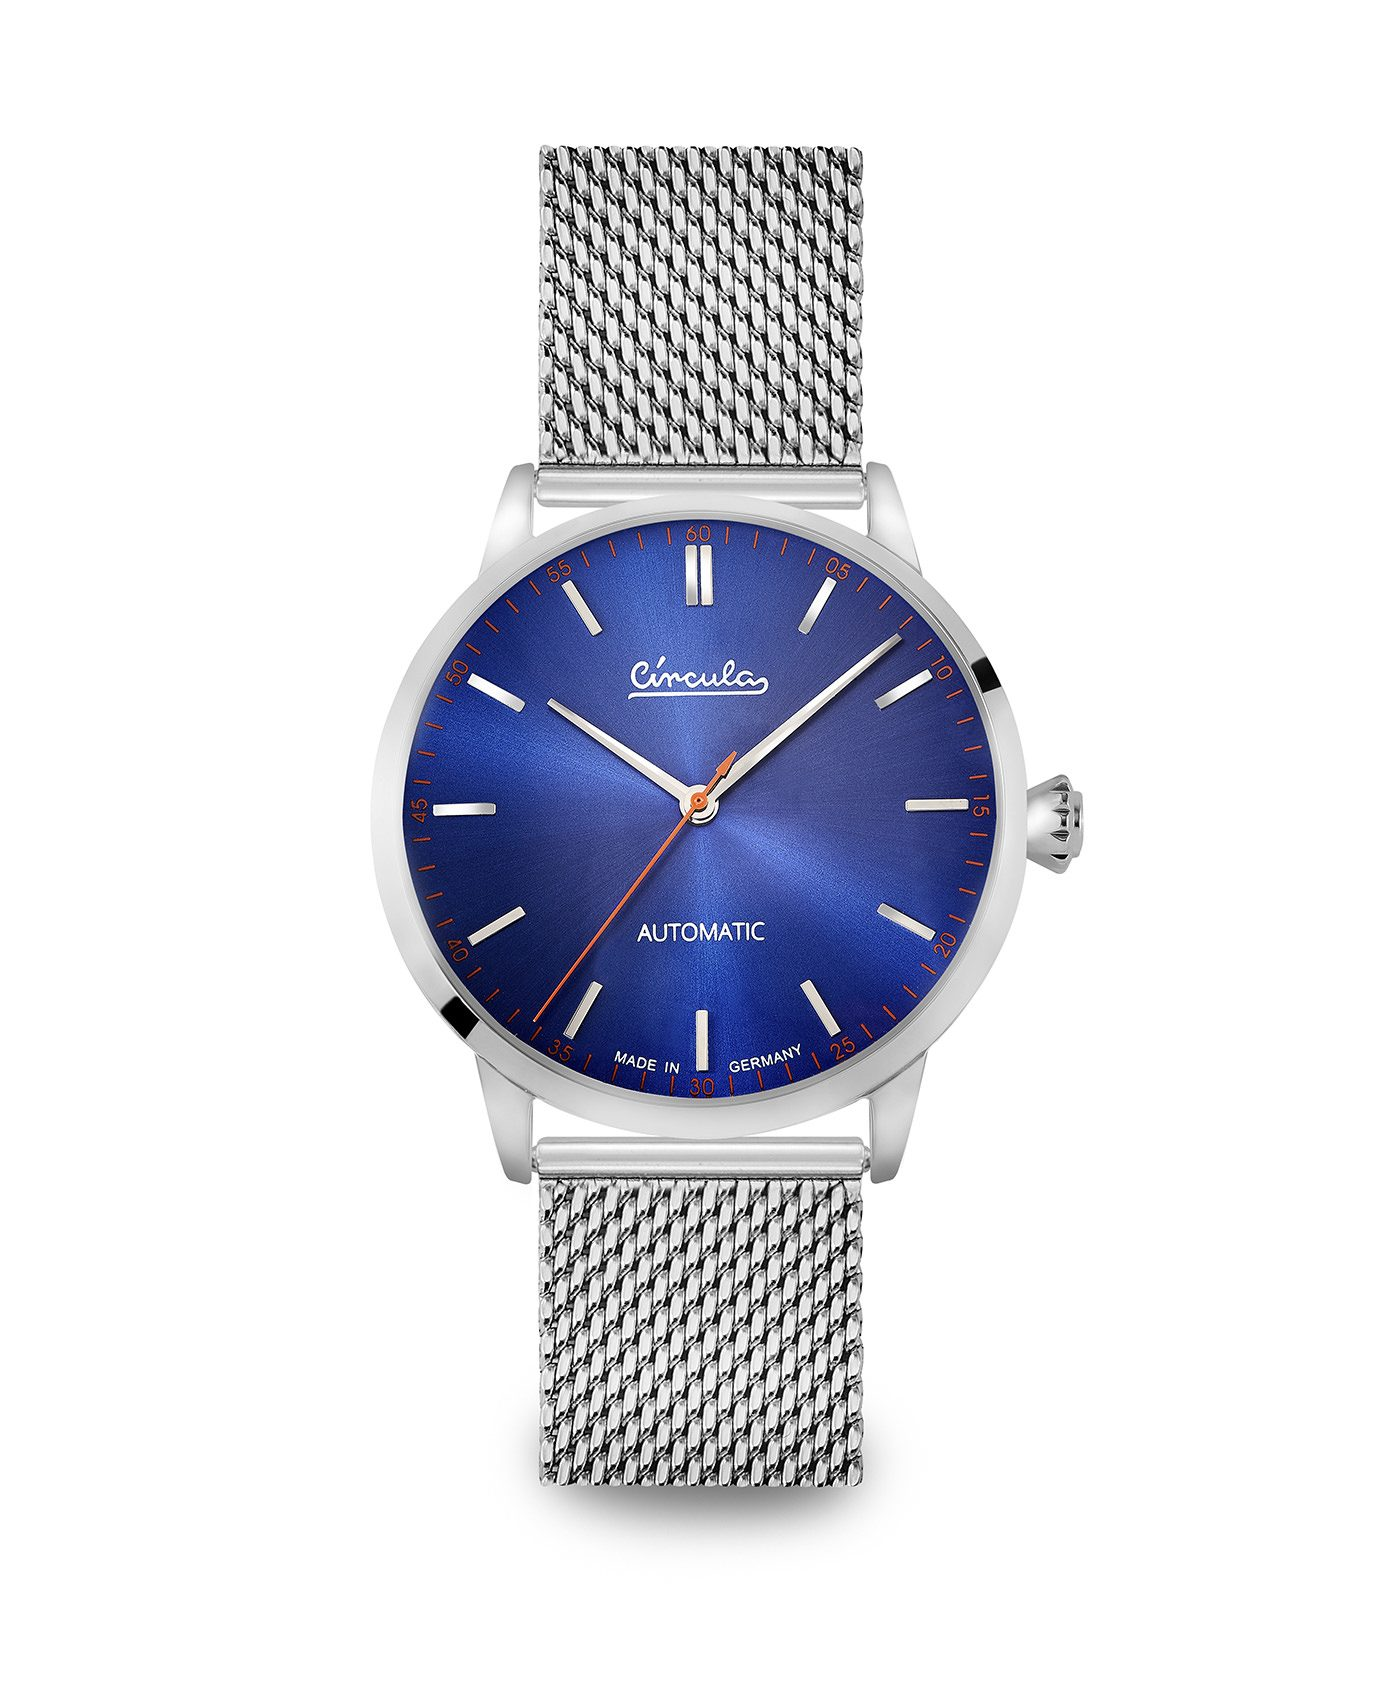 WB Circula - Classic Automatic Blue - Mesh Silver front